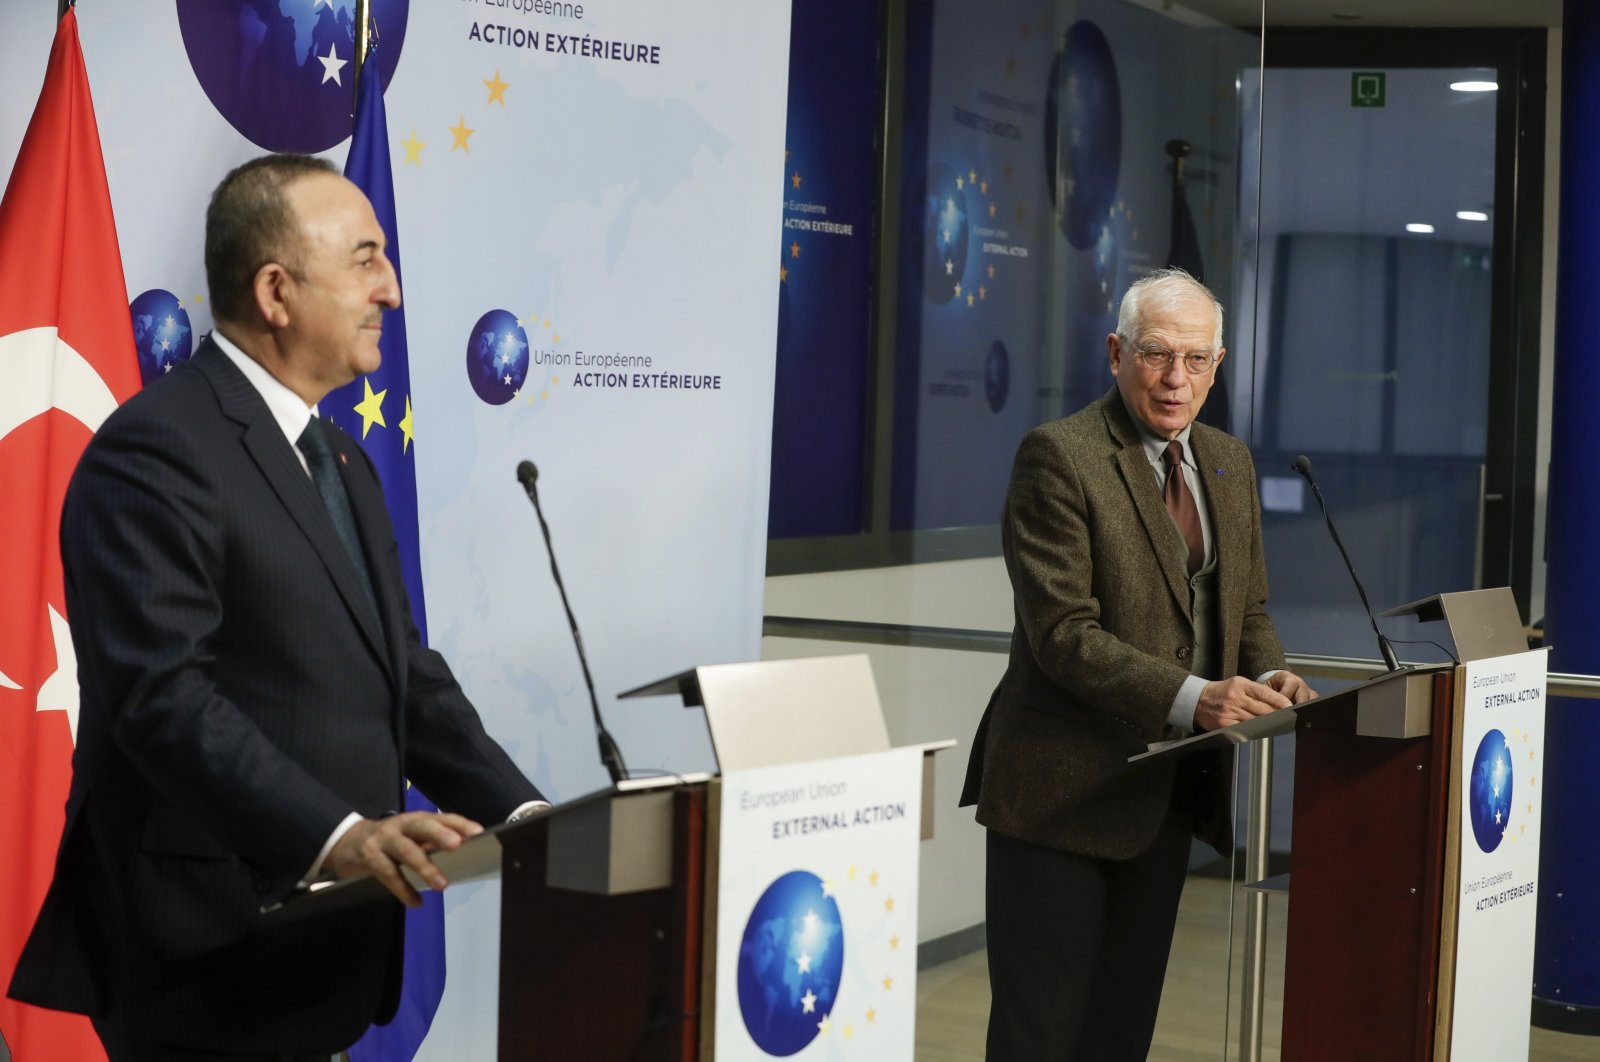 Foreign Minister Mevlüt Çavuşoğlu (L) and European Union foreign policy chief Josep Borrell give a joint statement prior to their meeting in Brussels, Belgium, Jan. 21, 2021. (AP Photo)